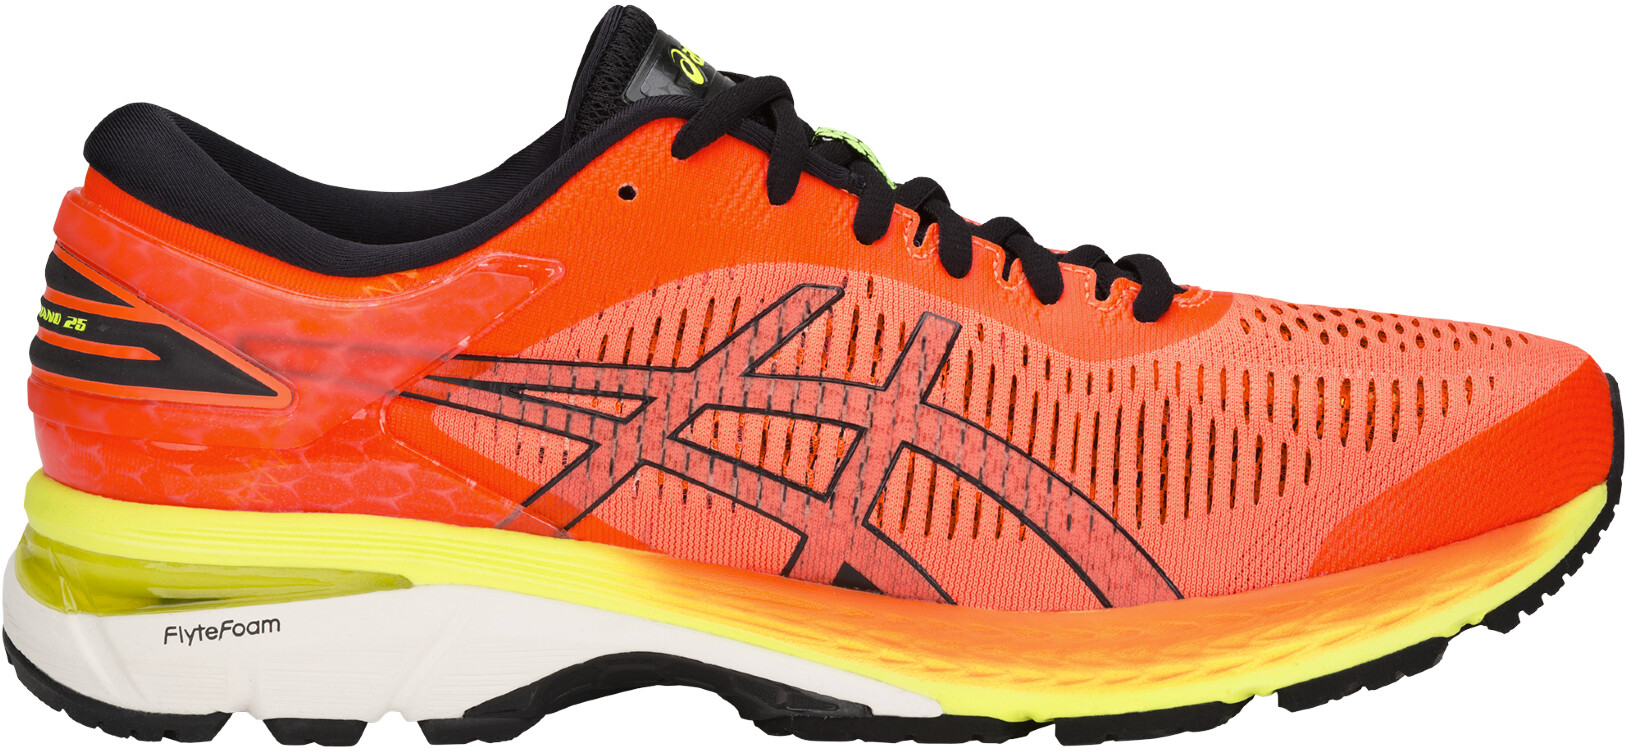 sale retailer f5384 1e1c6 asics Gel-Kayano 25 - Chaussures running Homme - orange